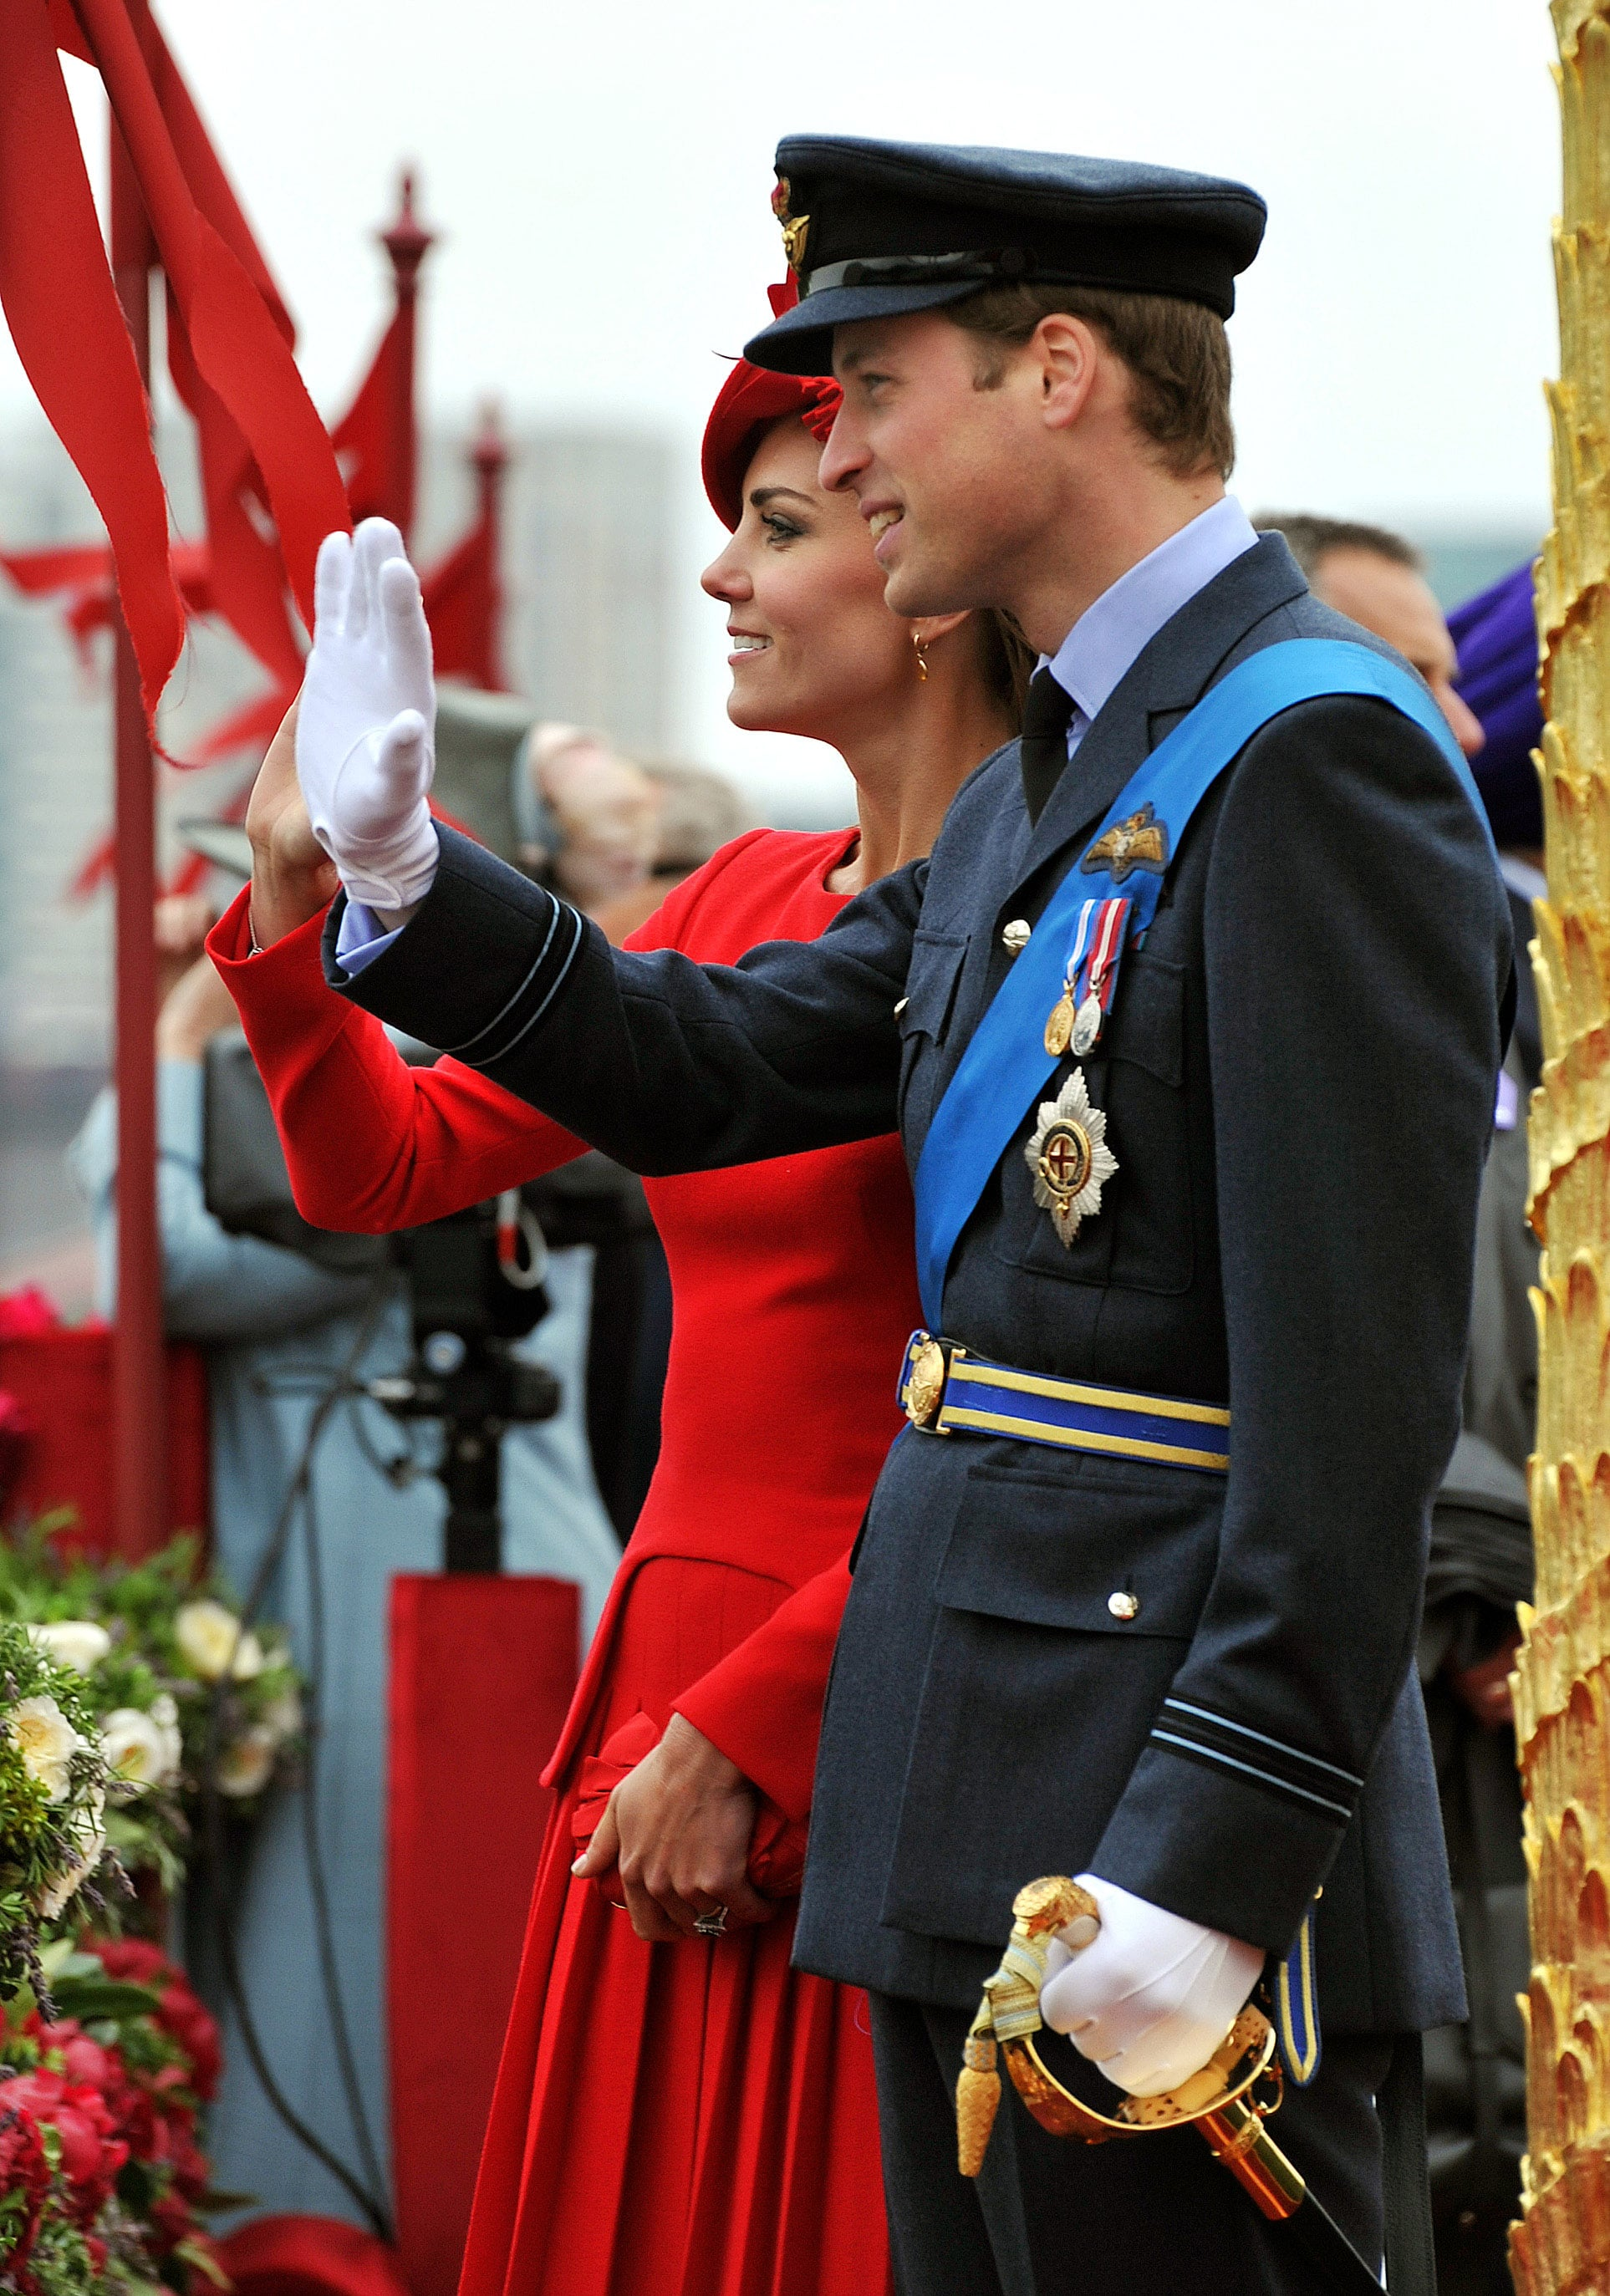 Prince William and Kate Middleton waved in sync during the June 2012 Diamond Jubilee celebrations in London.